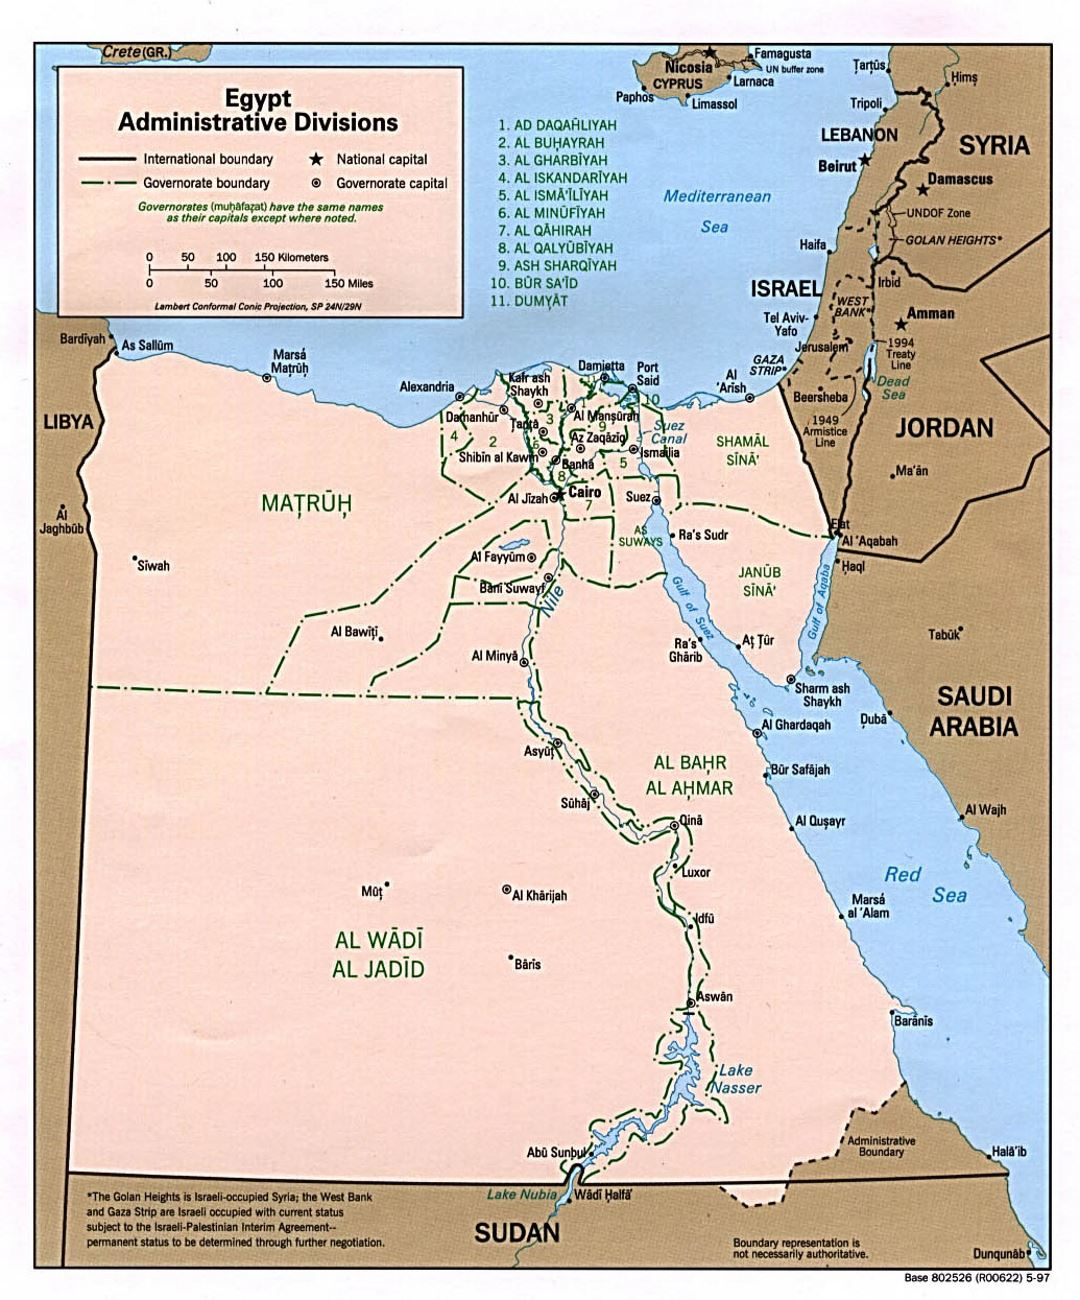 Large administrative divisions map of Egypt - 1997